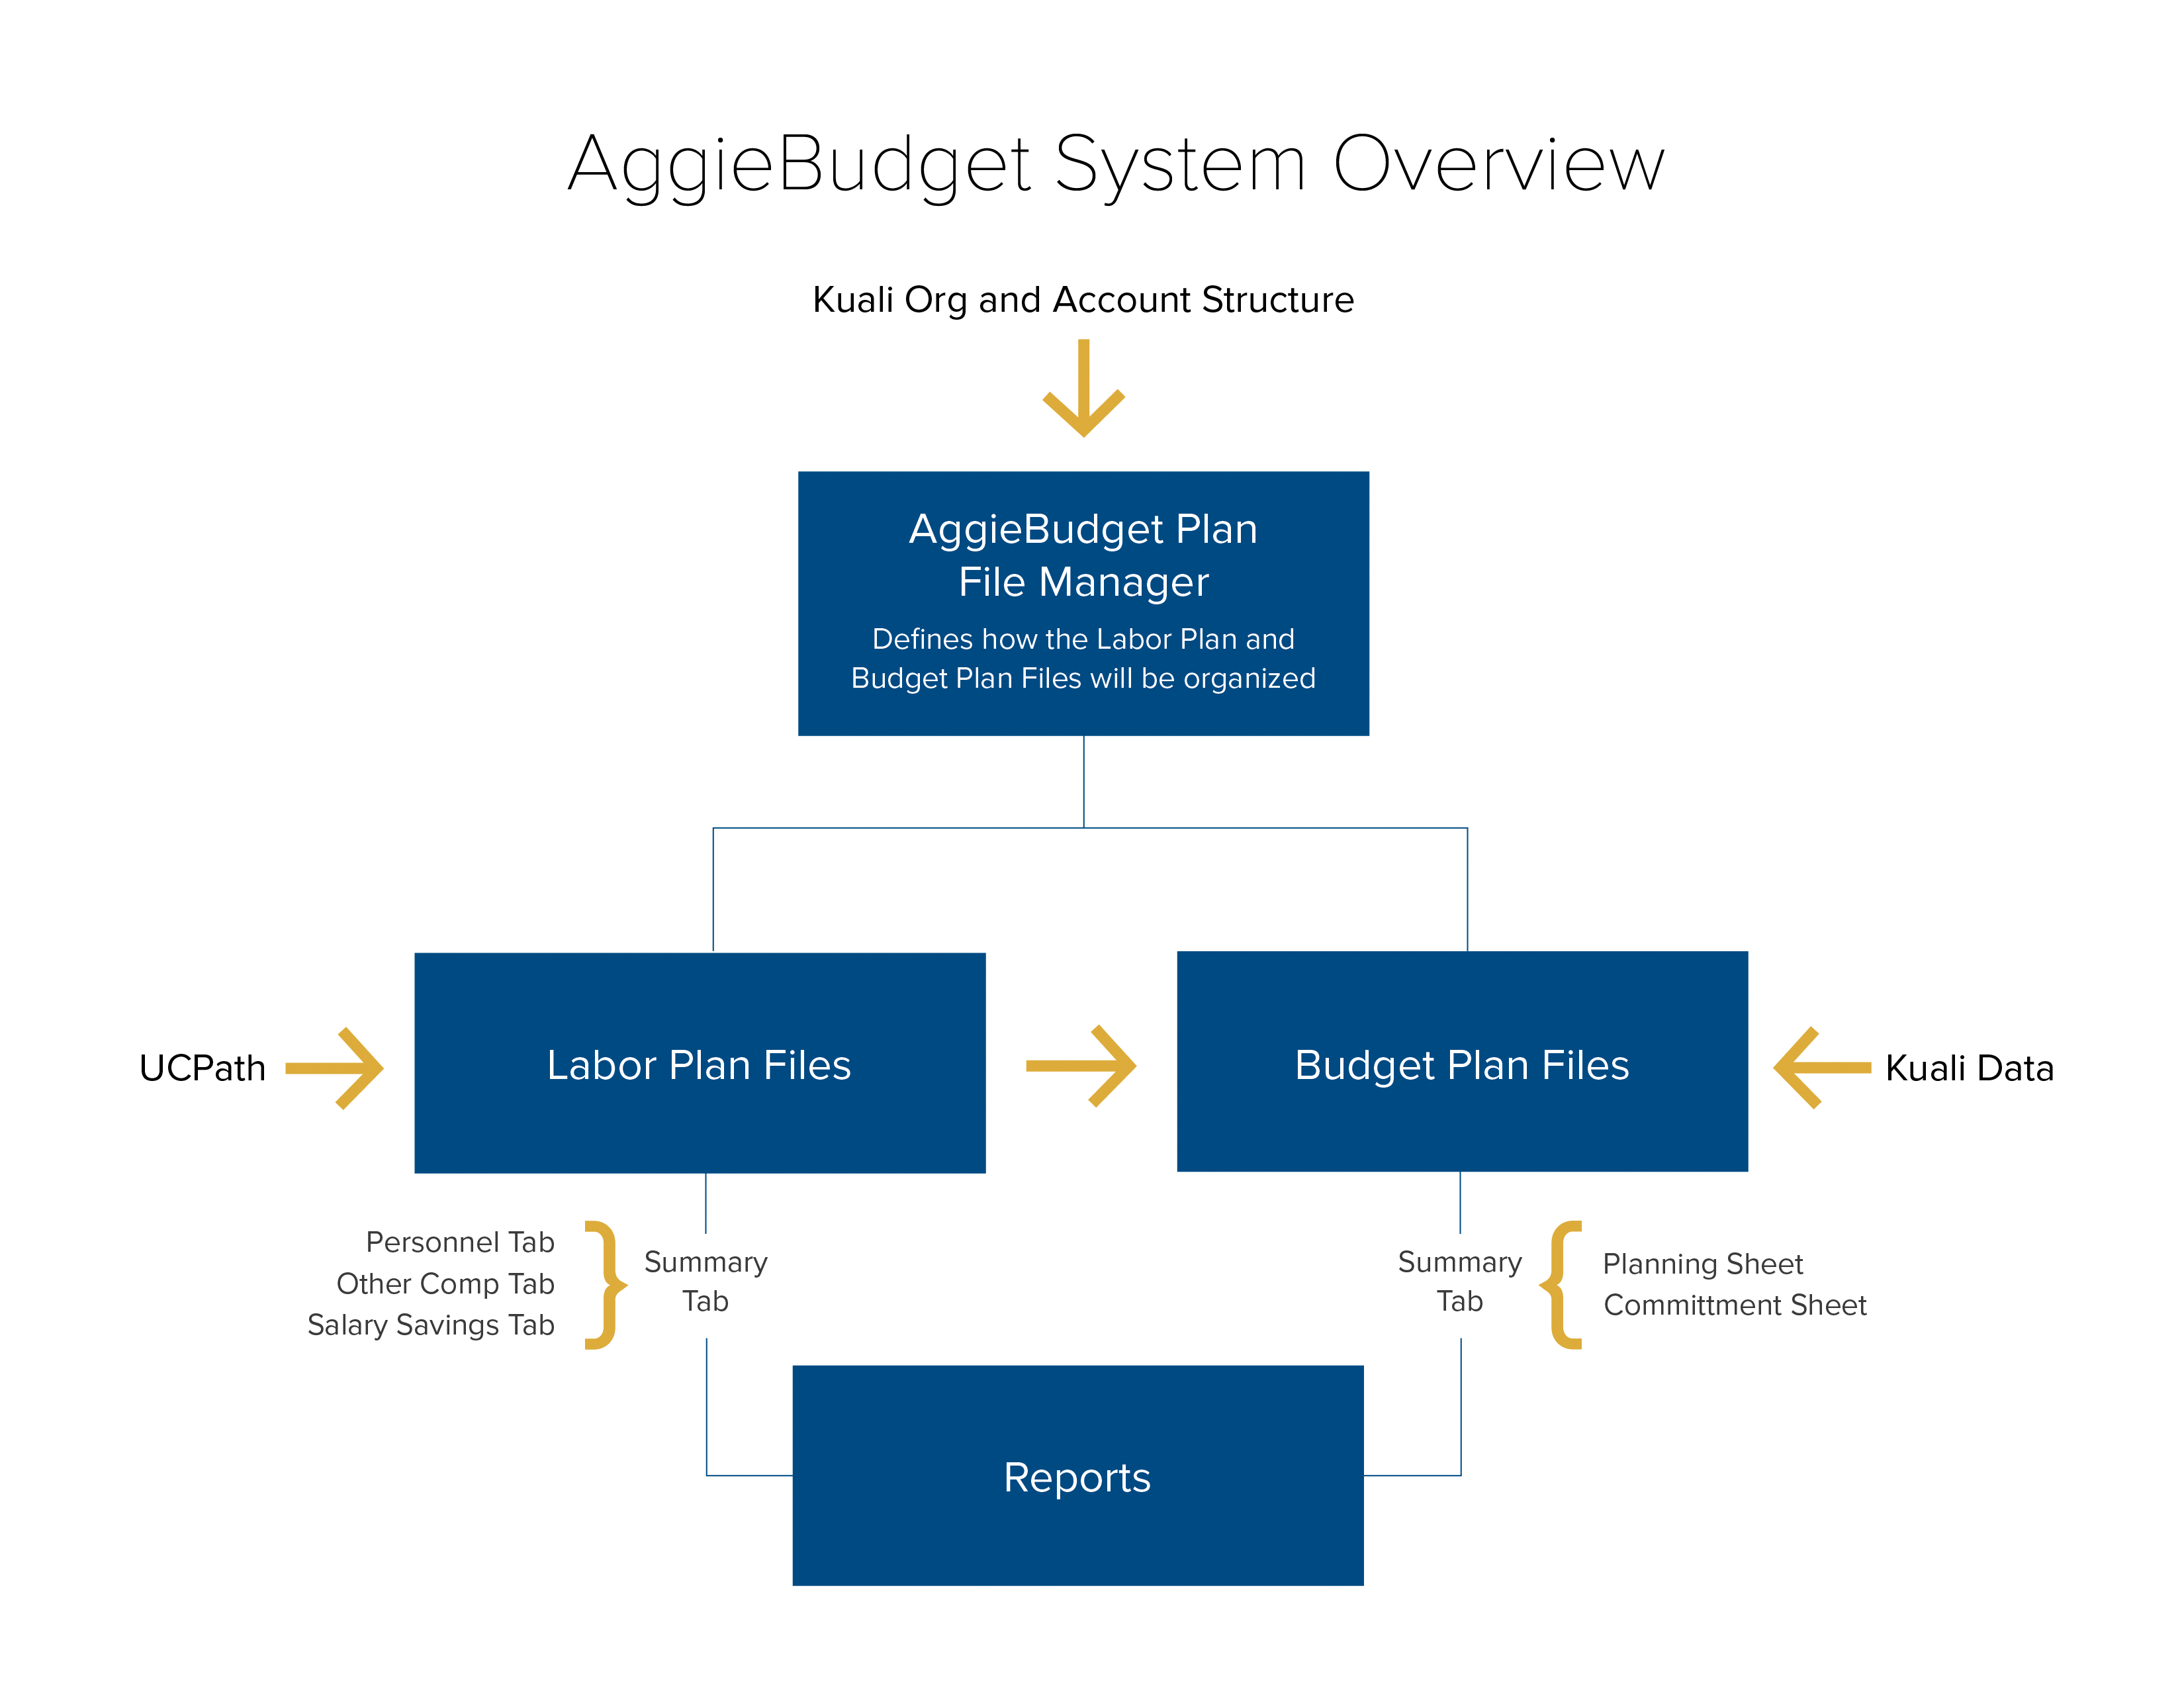 AggieBudget System Overview Graphic